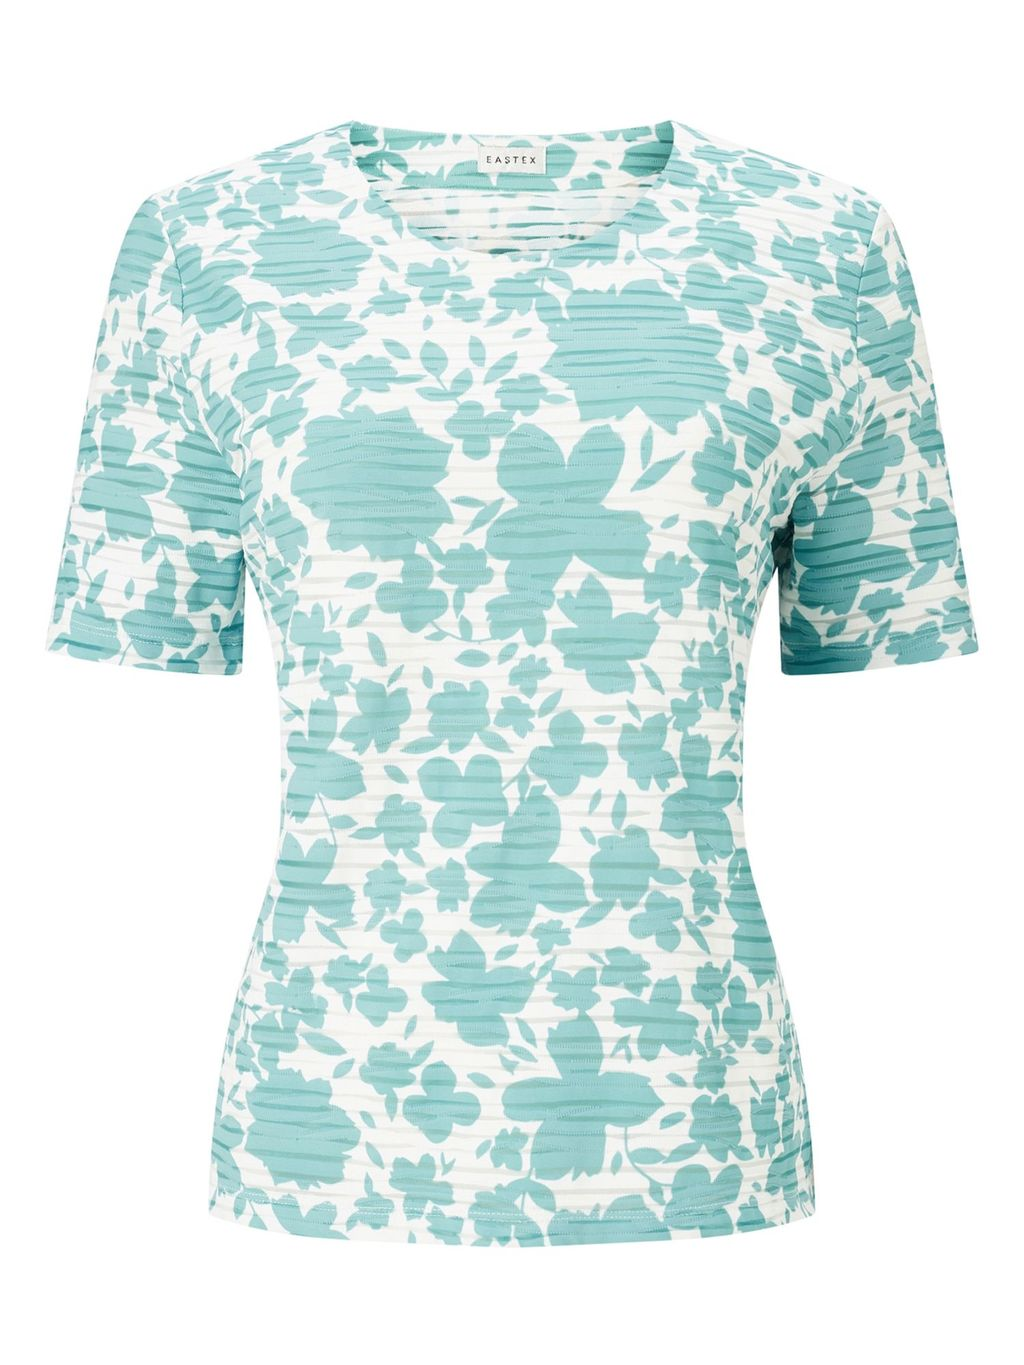 Mixed Texture Floral Top, Multi Coloured - style: t-shirt; hip detail: fitted at hip; predominant colour: white; secondary colour: turquoise; occasions: casual; length: standard; fibres: cotton - stretch; fit: body skimming; neckline: crew; sleeve length: short sleeve; sleeve style: standard; texture group: jersey - clingy; pattern type: fabric; pattern size: standard; pattern: florals; season: s/s 2016